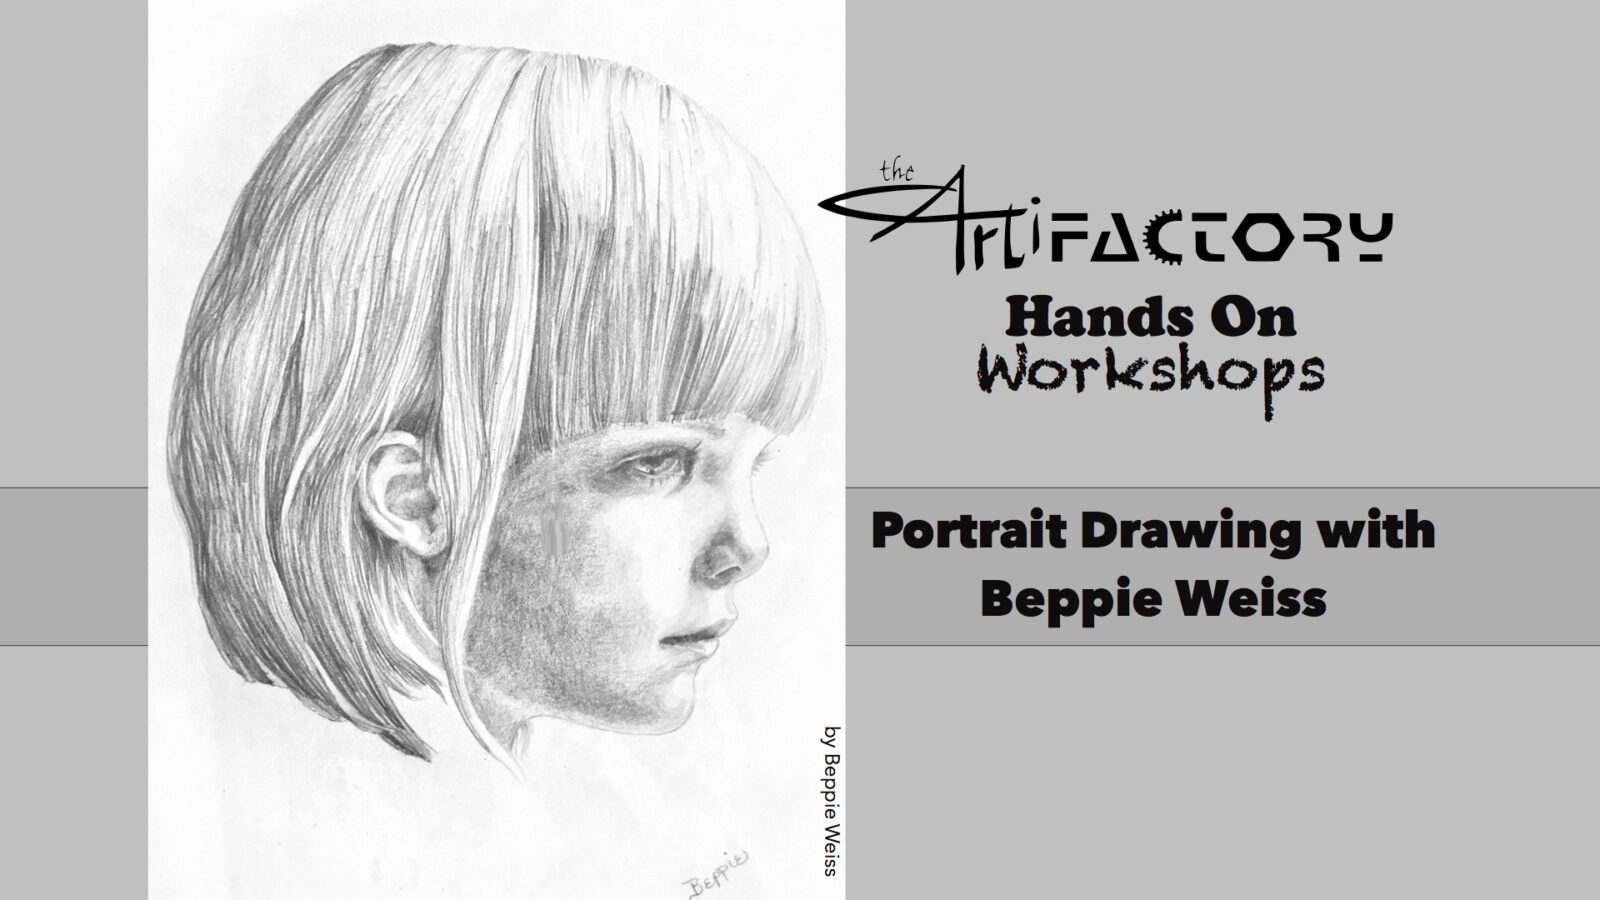 Portrait Drawing with Beppie Weiss